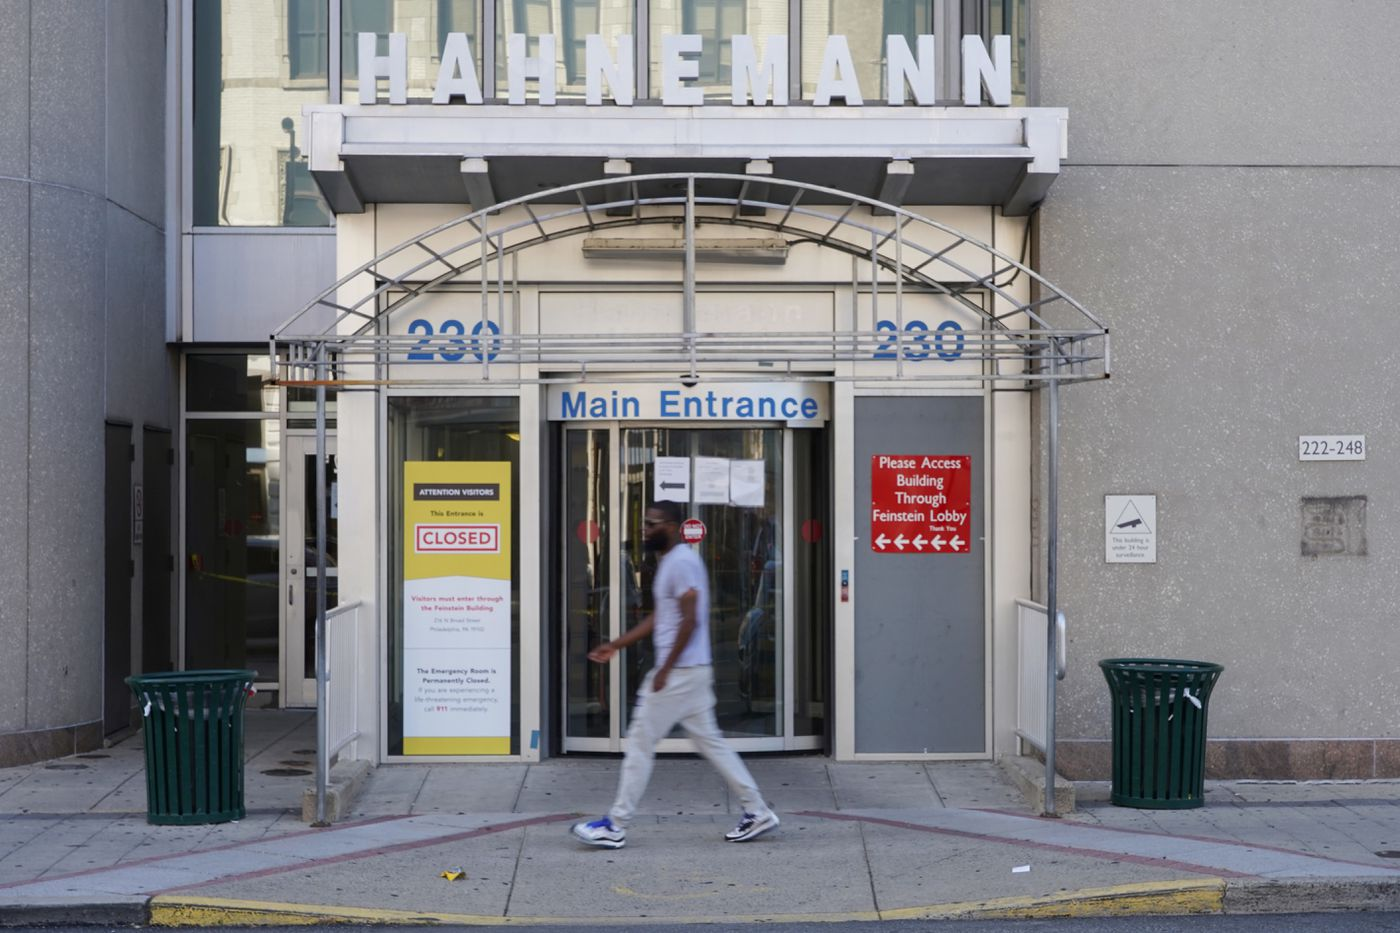 A pedestrian walks by the the closed sign on the main entrance of Hahnemann University Hospital in August.